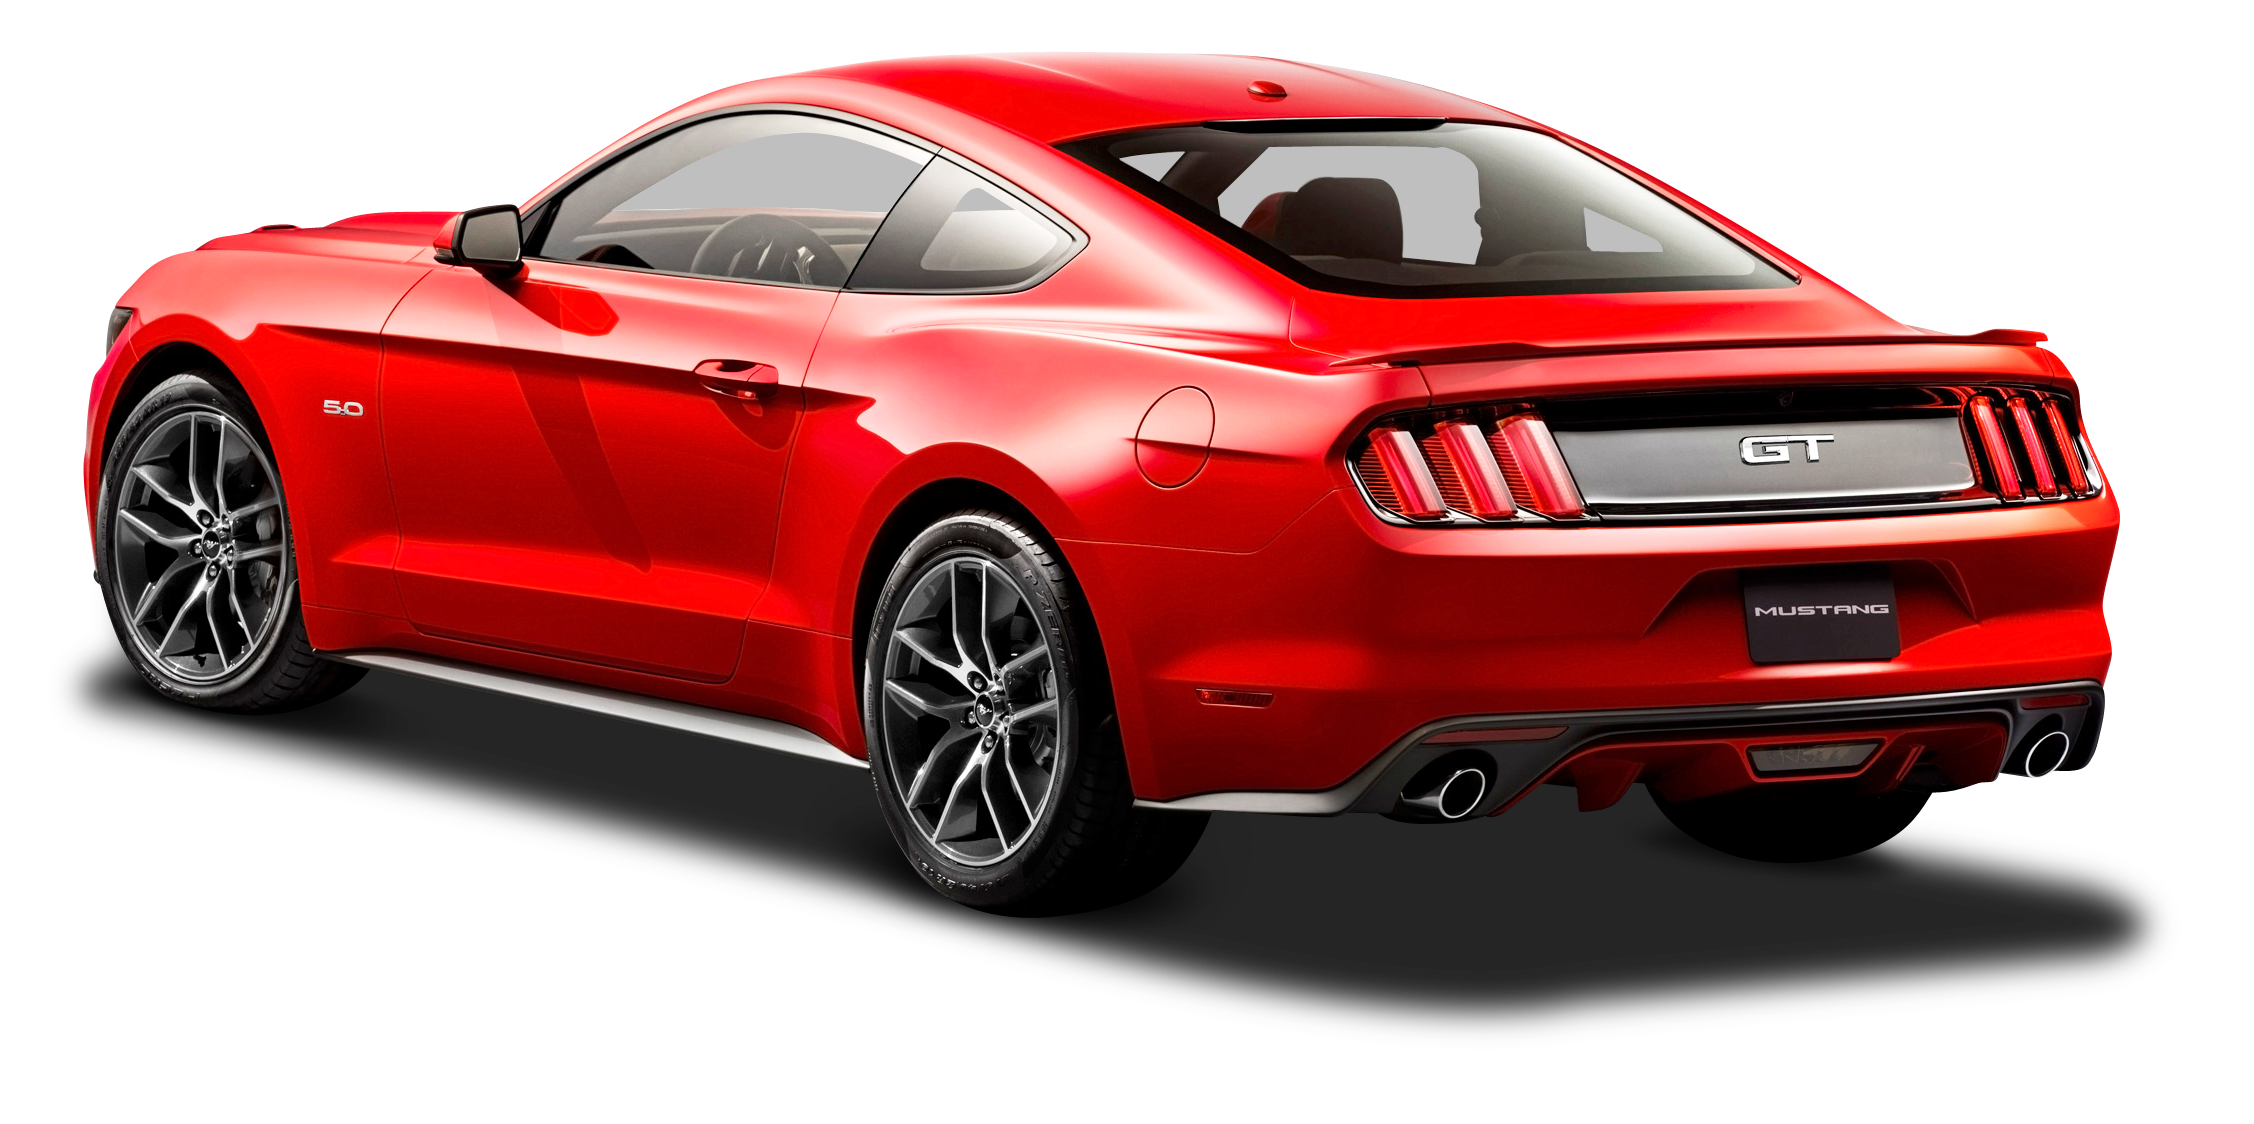 Ford Mustang Red Car Back Side